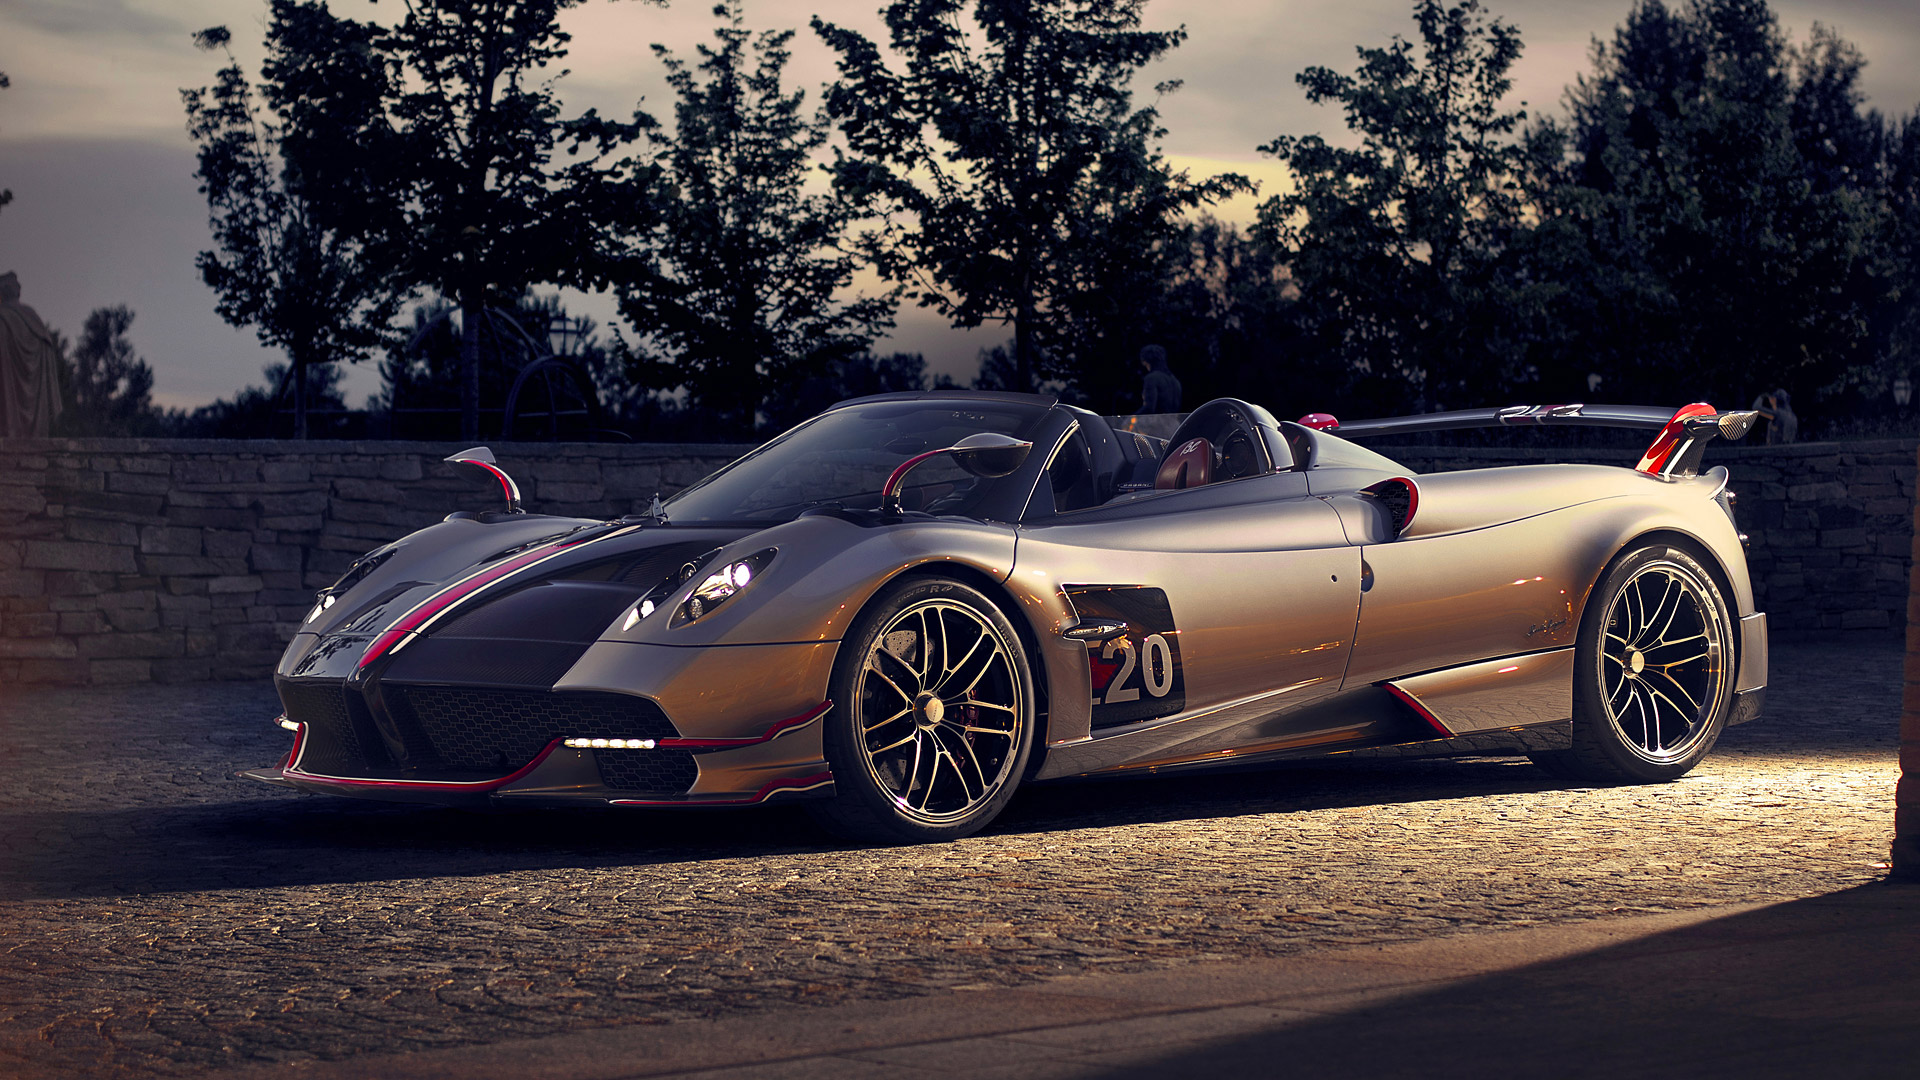 Latest Pagani News Breaking News Photos Videos Reviews